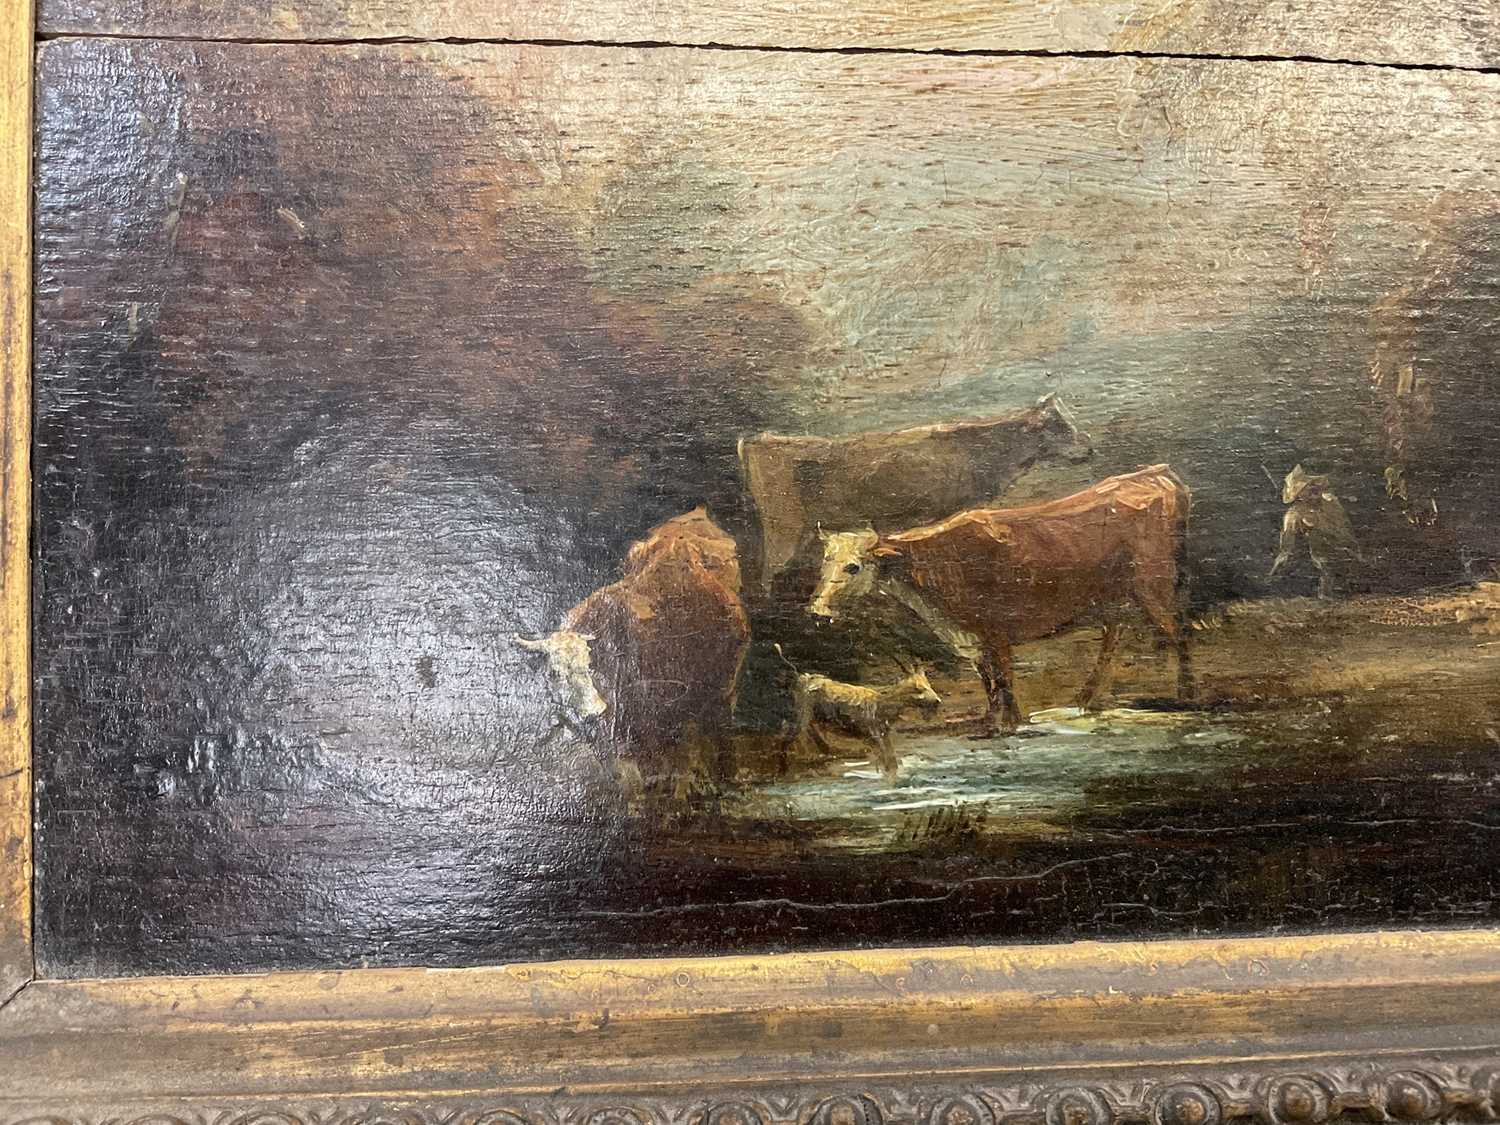 Manner of Thomas Gainsborough oil on panel - cattle and herders in landscape, in gilt frame - Image 8 of 15